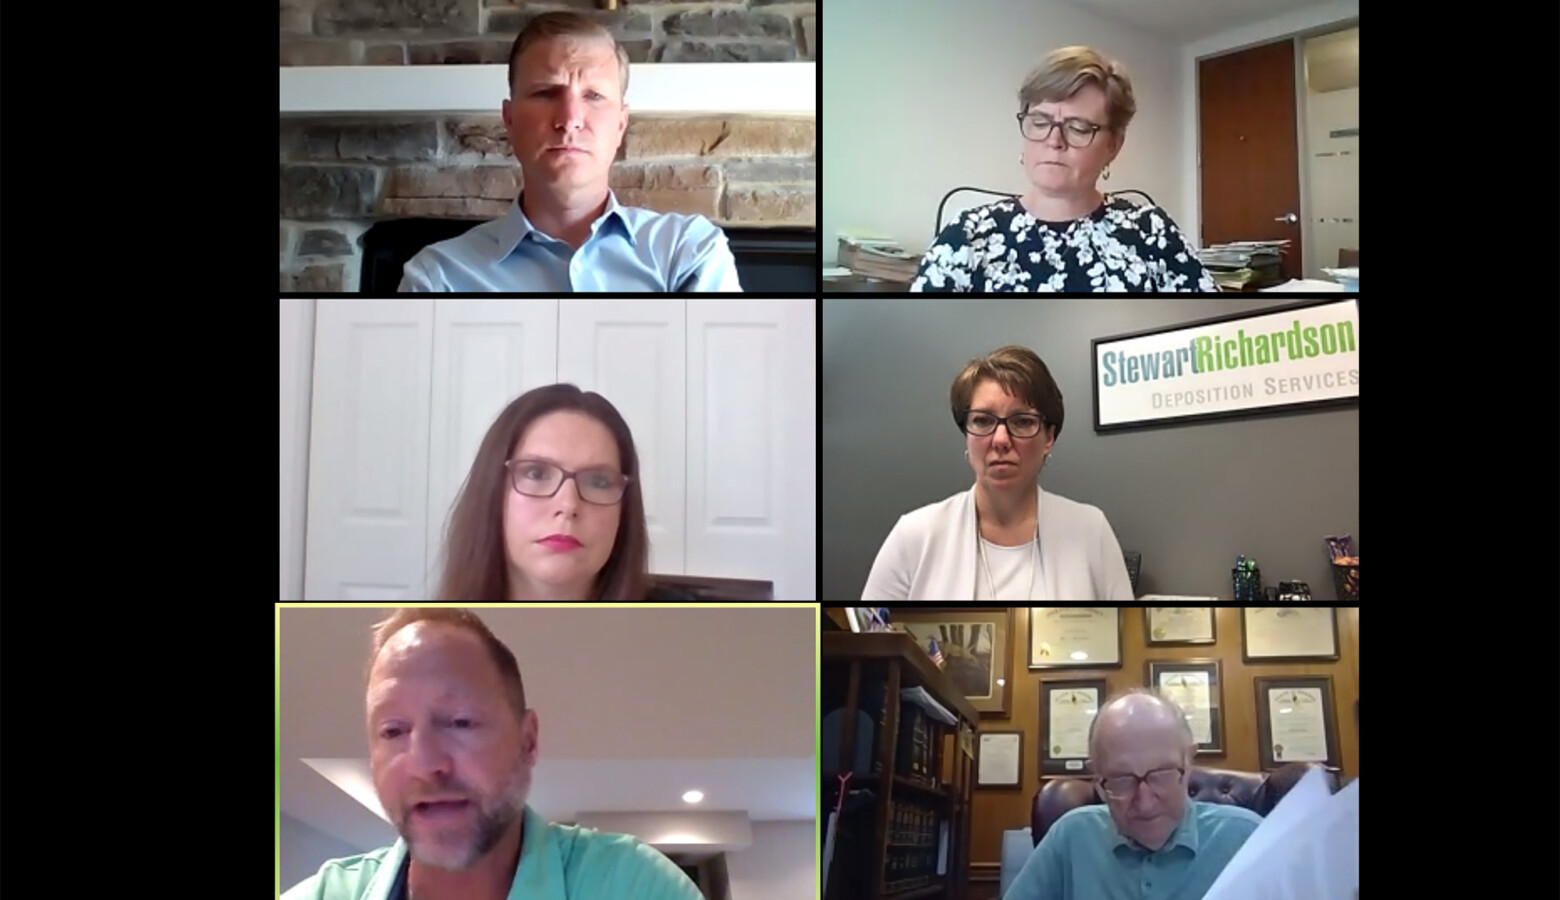 The Indiana Election Commission holds a virtual meeting in light of the ongoing COVID-19 pandemic. Republicans at that meeting rejected an effort to expand election options beyond in-person voting. (Screenshot of Zoom call)